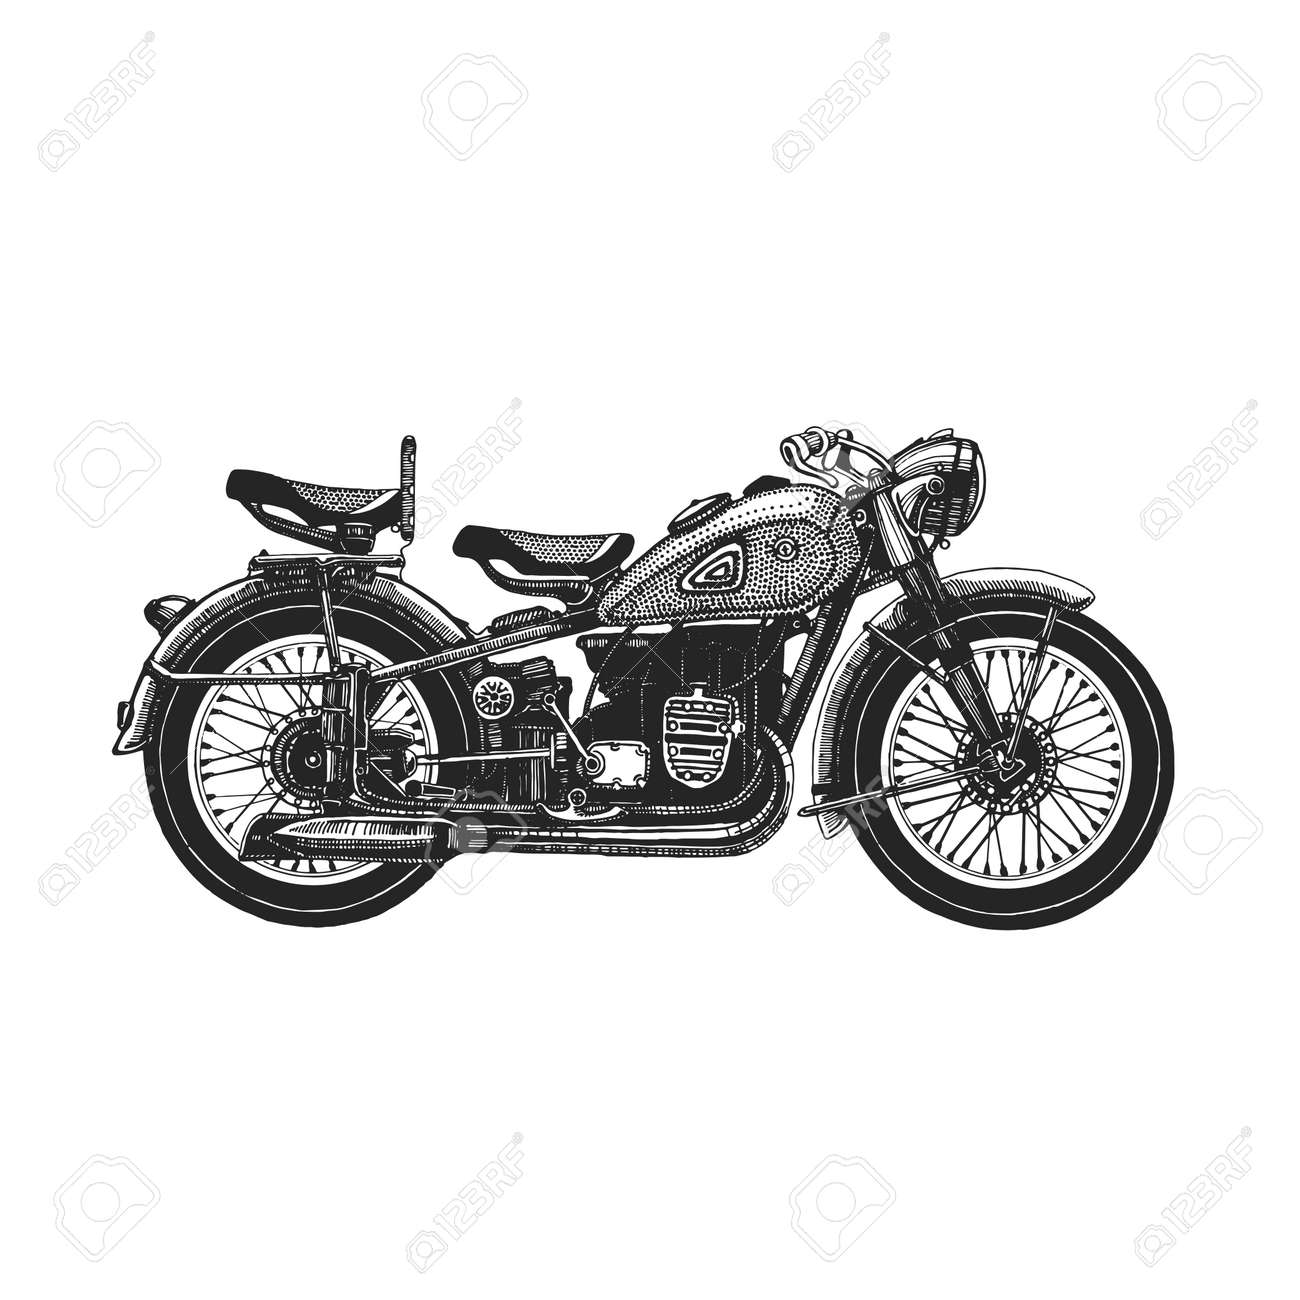 Motorcycle hand drawn icon For any kind of design - 61538816